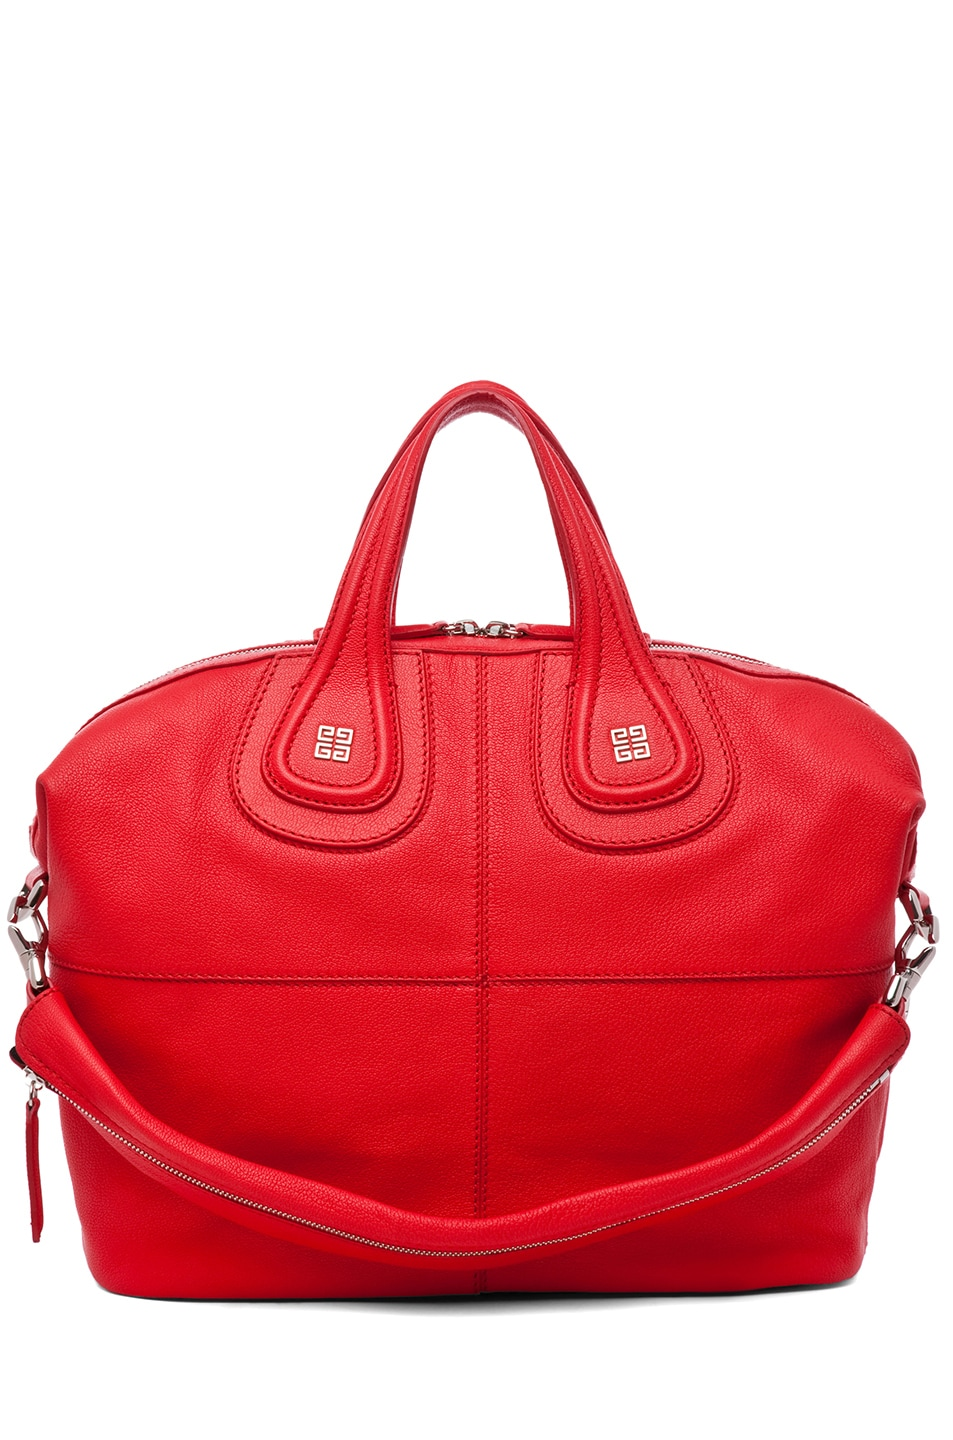 Image 1 of Givenchy Medium Nightingale in Red